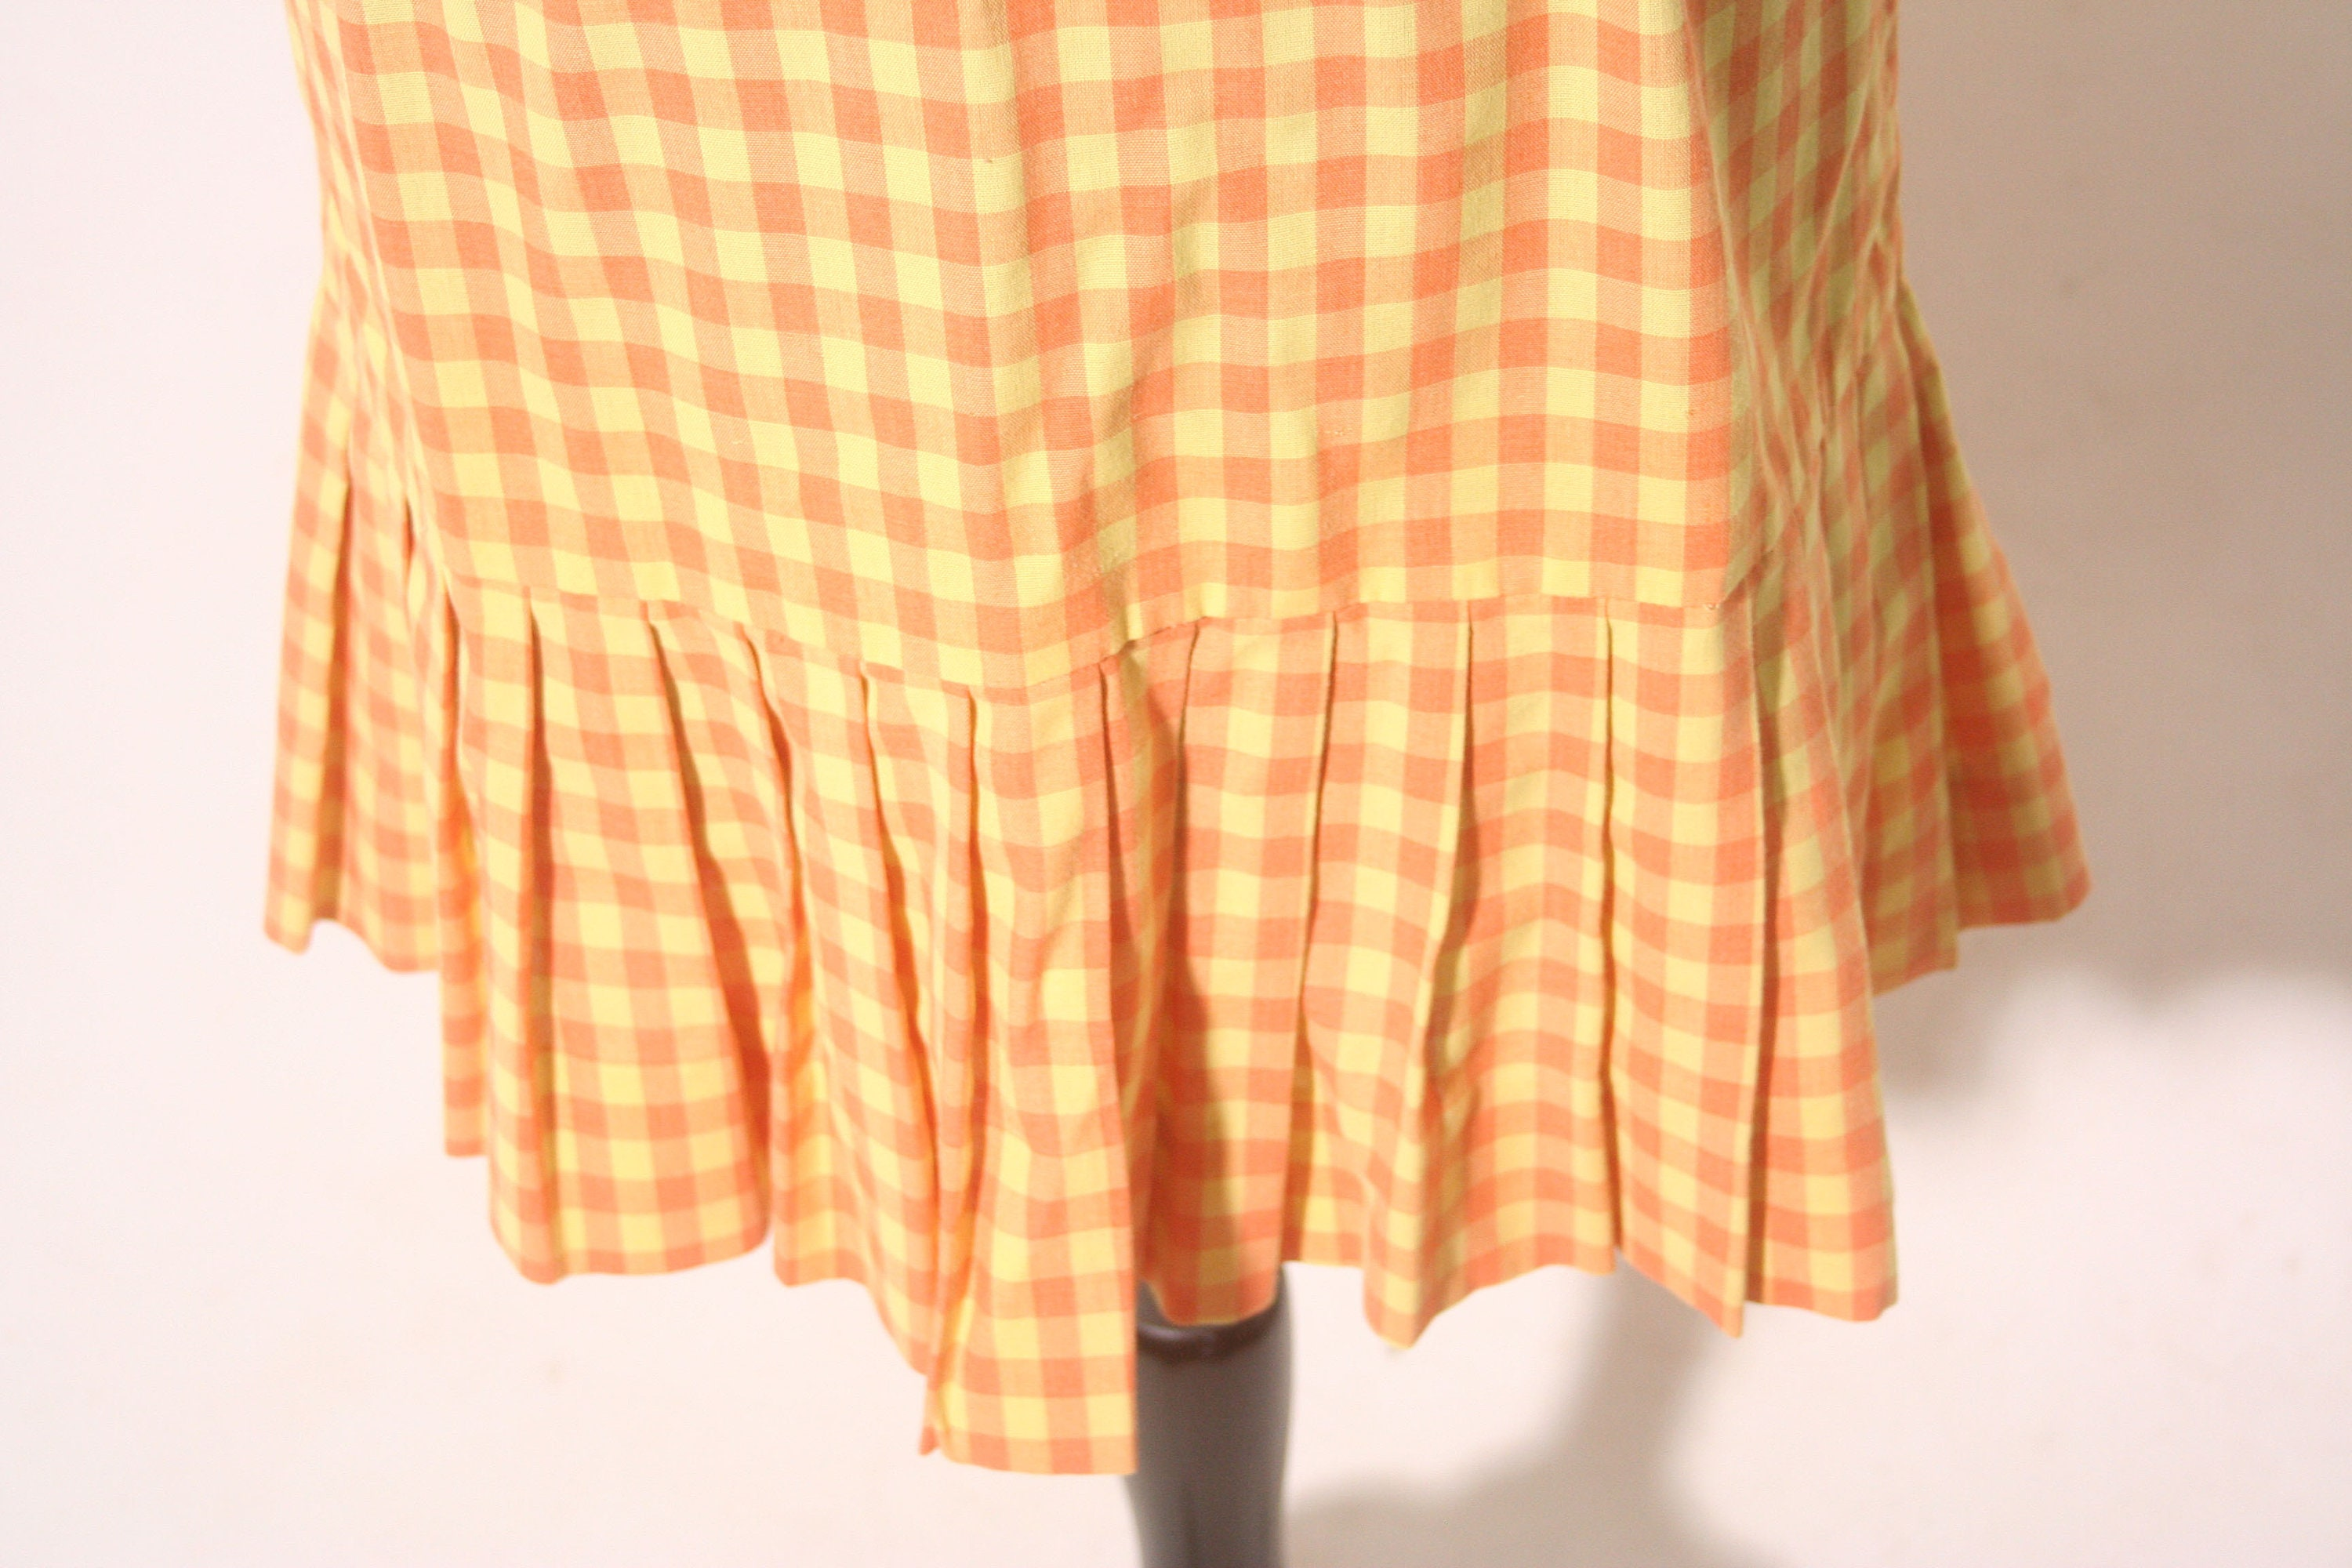 80s Dresses | Casual to Party Dresses Vintage 1980S Checkered Orange  Yellow Pleated Skirt Tennis Shift Dress Size M $24.00 AT vintagedancer.com